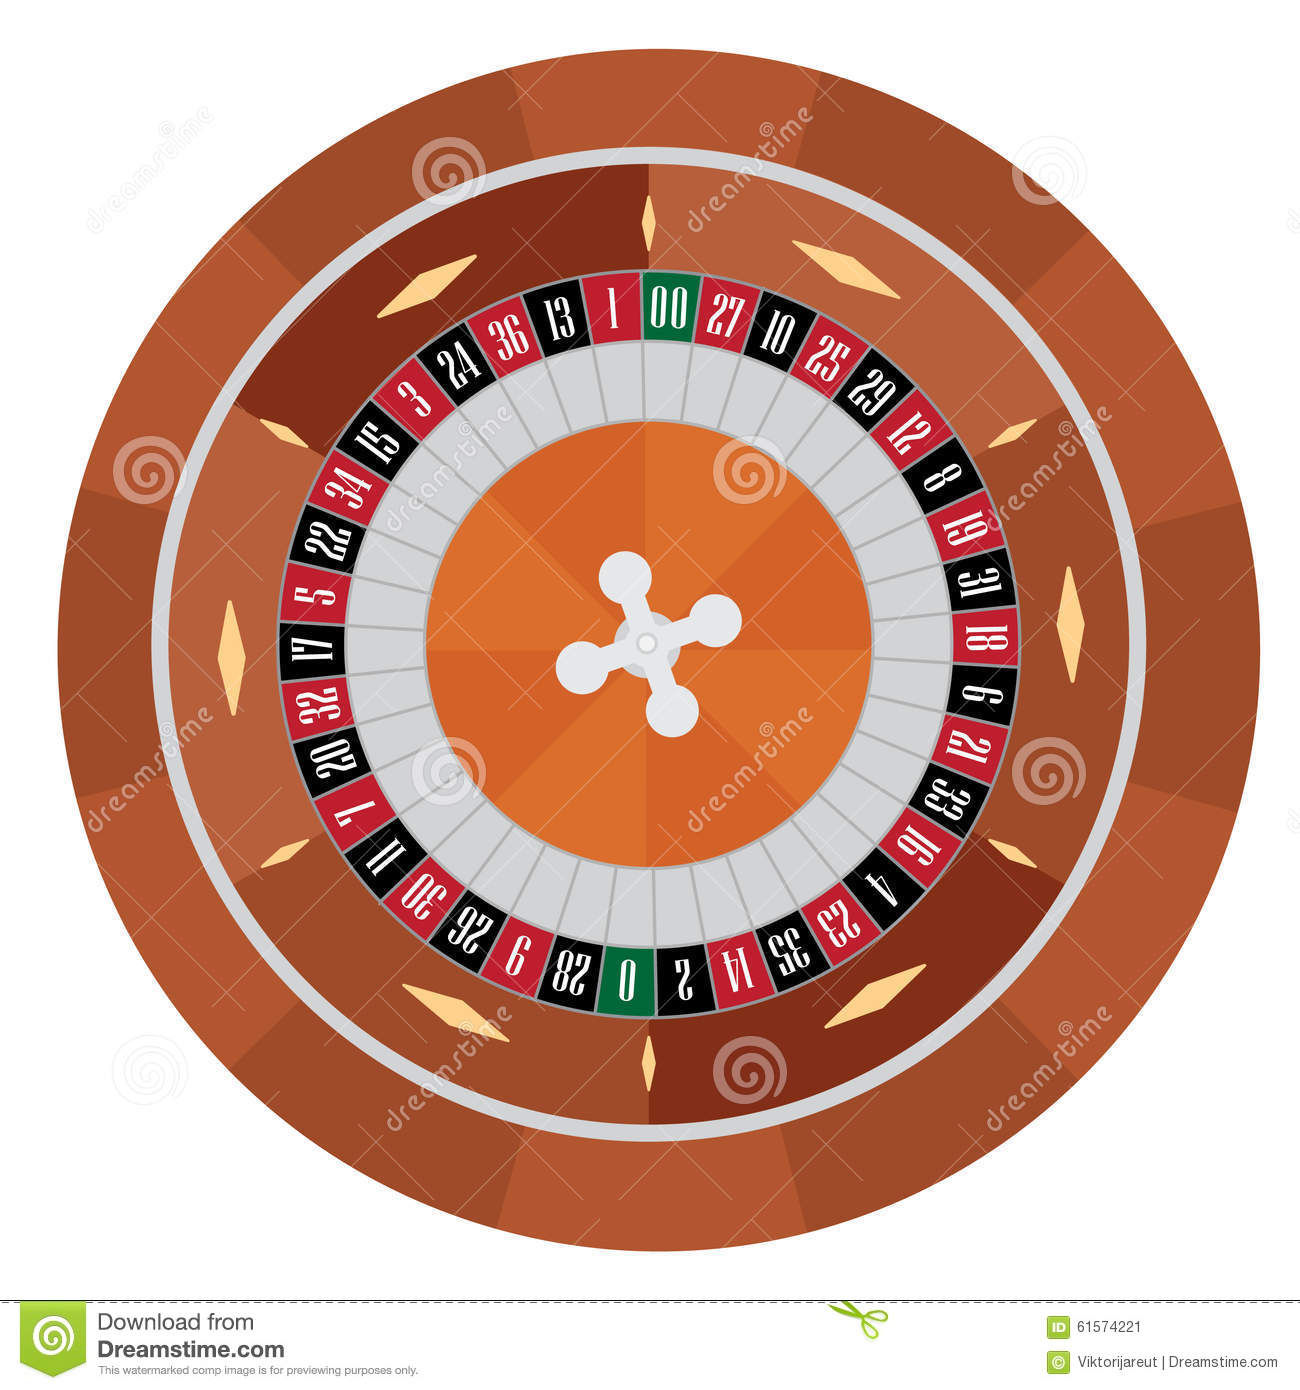 free online casino book wheel